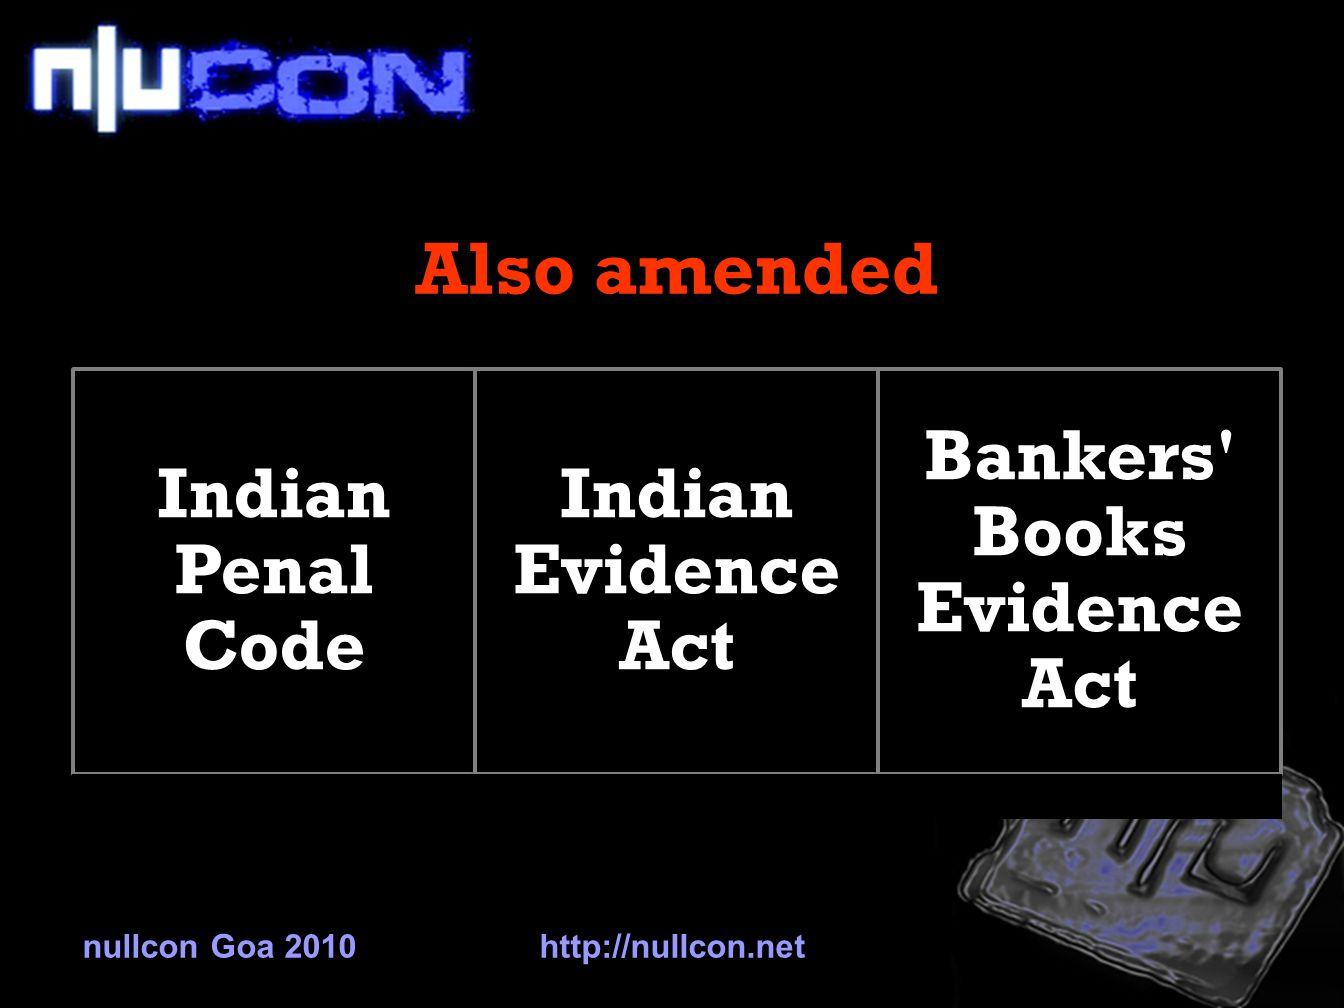 Also amended Indian Penal Code Indian Evidence Act Bankers Books Evidence Act nullcon Goa 2010http://nullcon.net